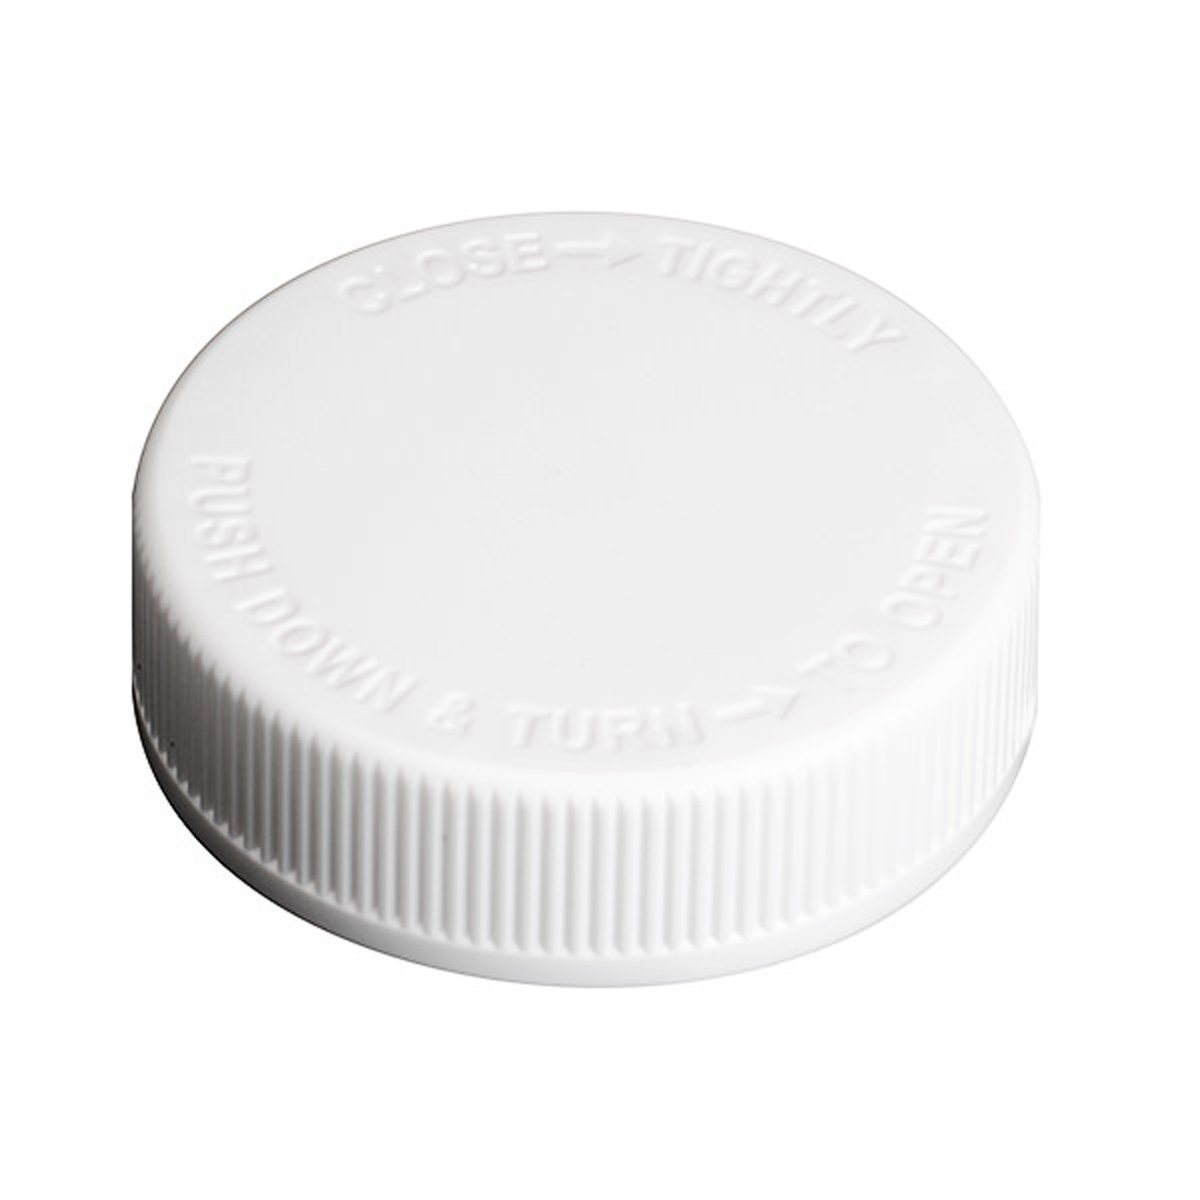 Foam Lined Child Resistant Cap 63mm White